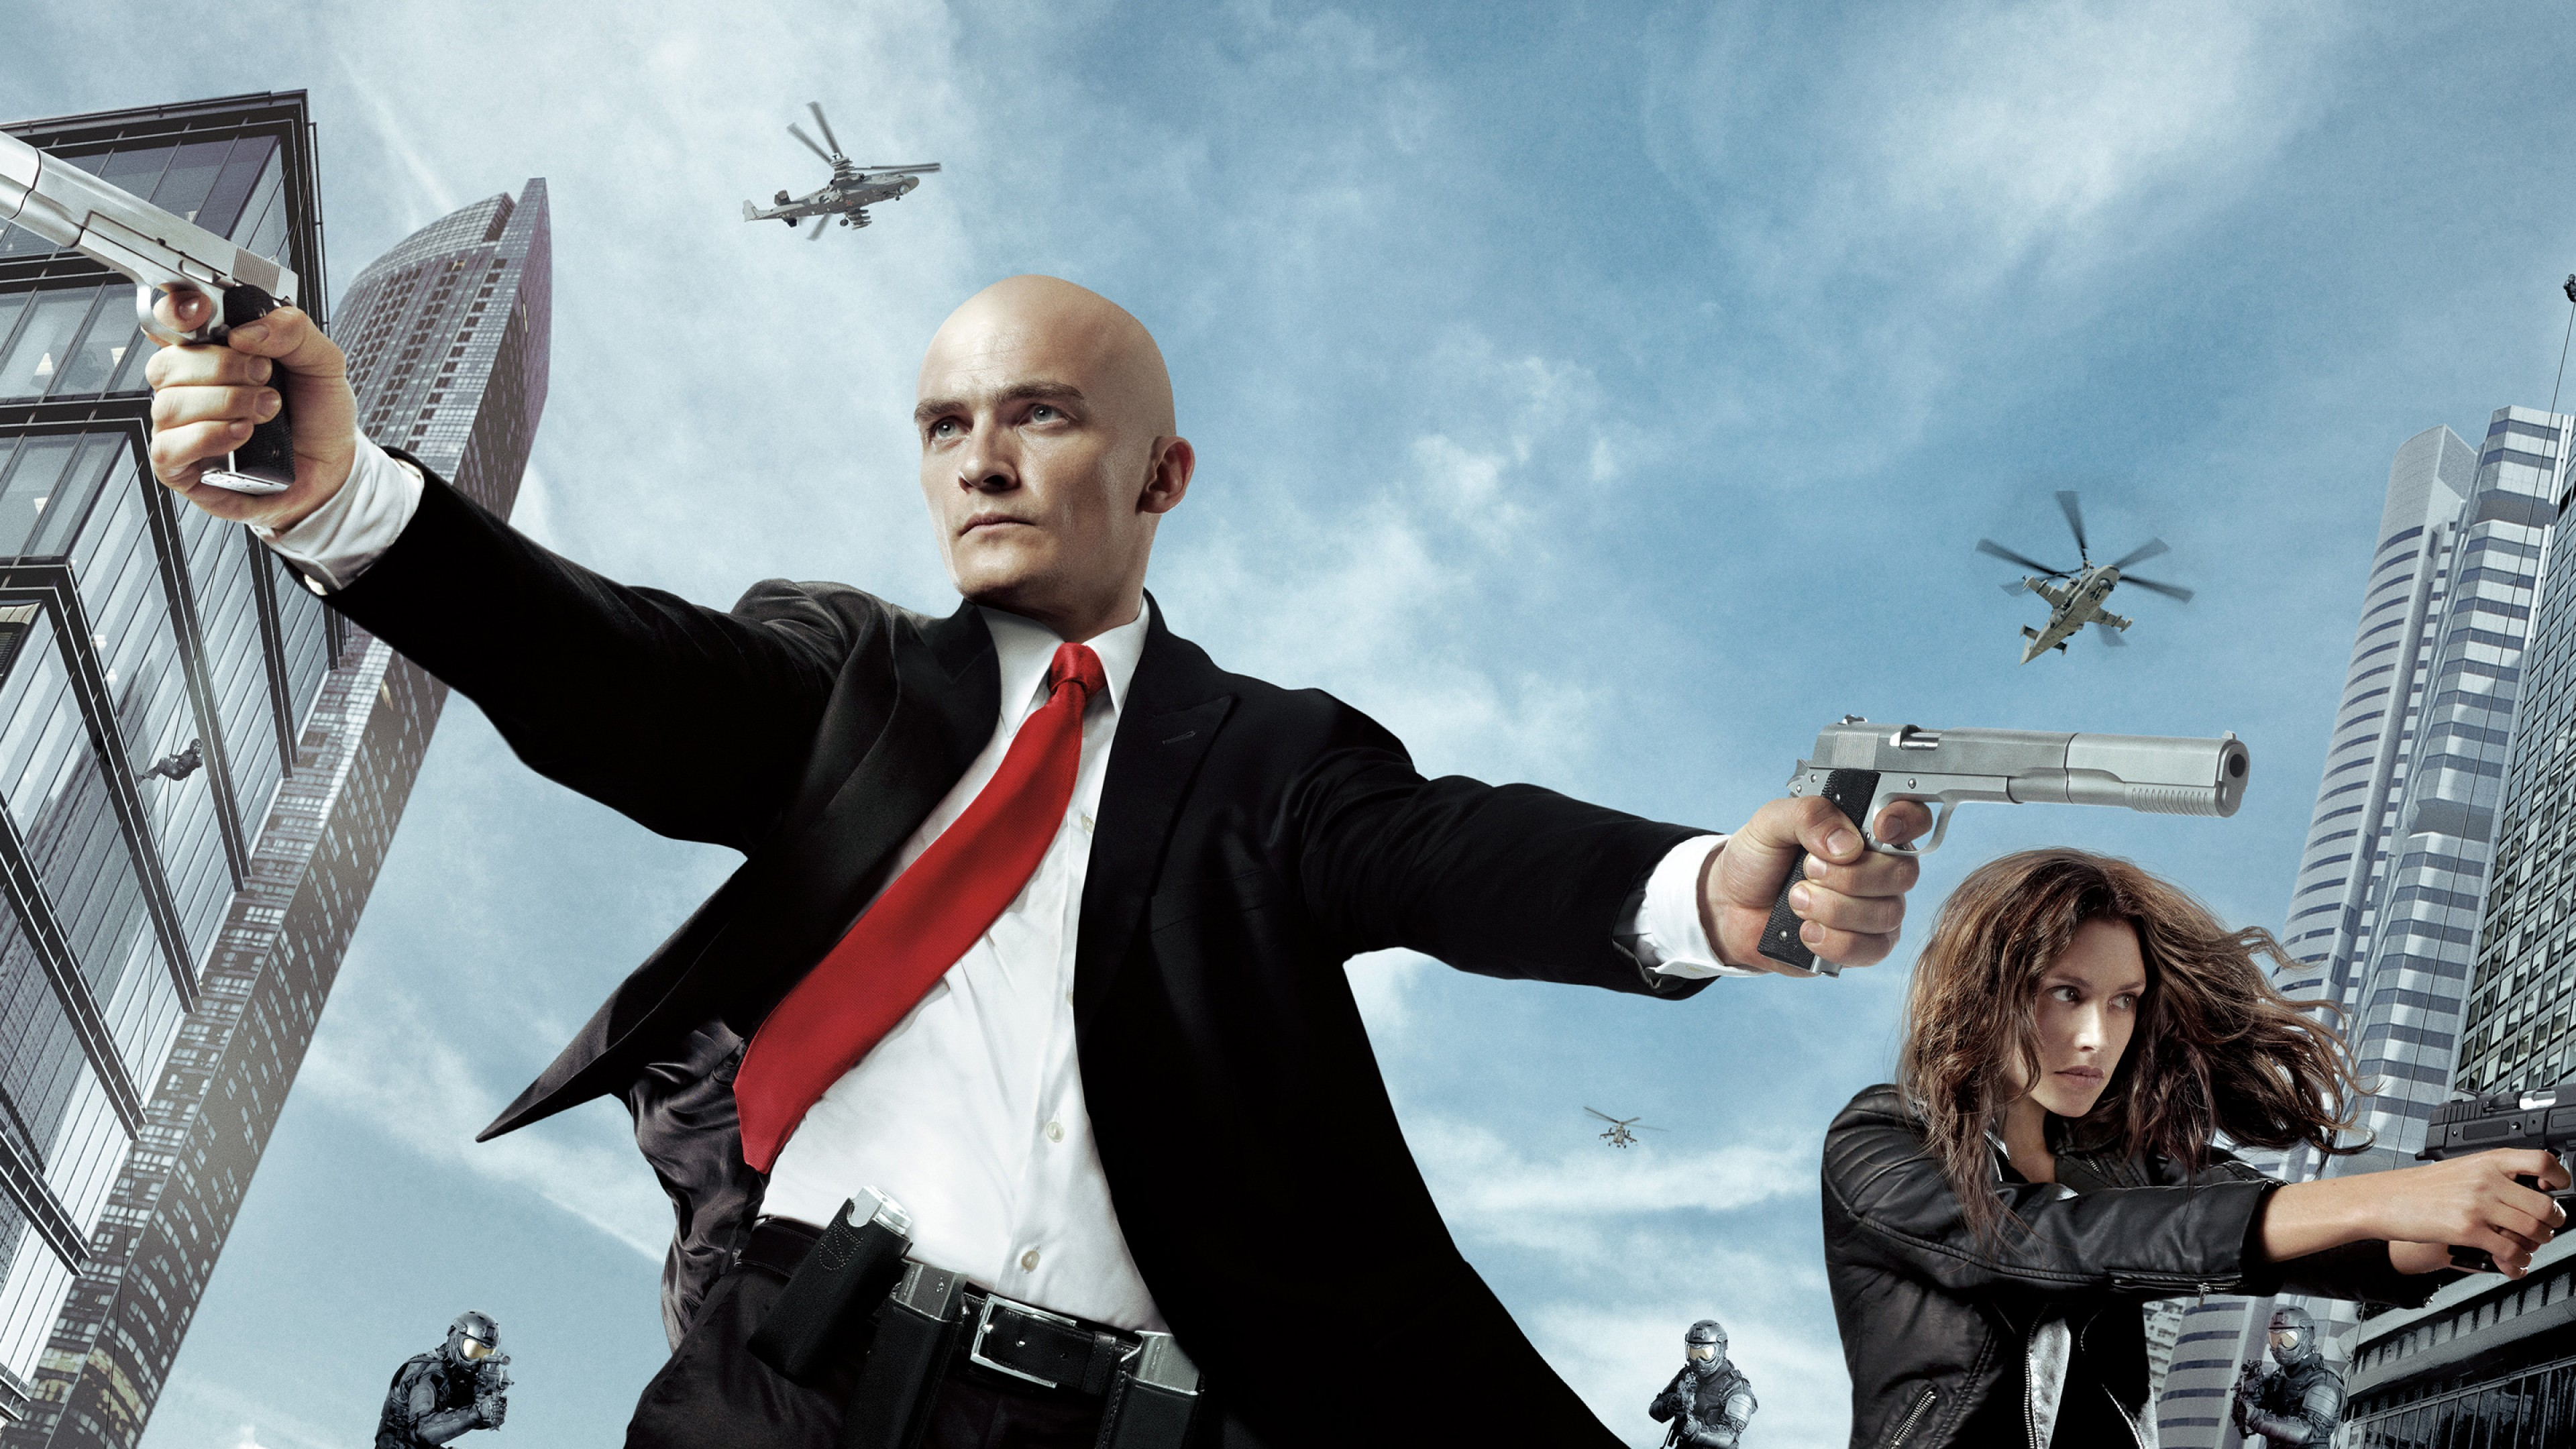 hitman agent 47 wallpapers high quality | download free